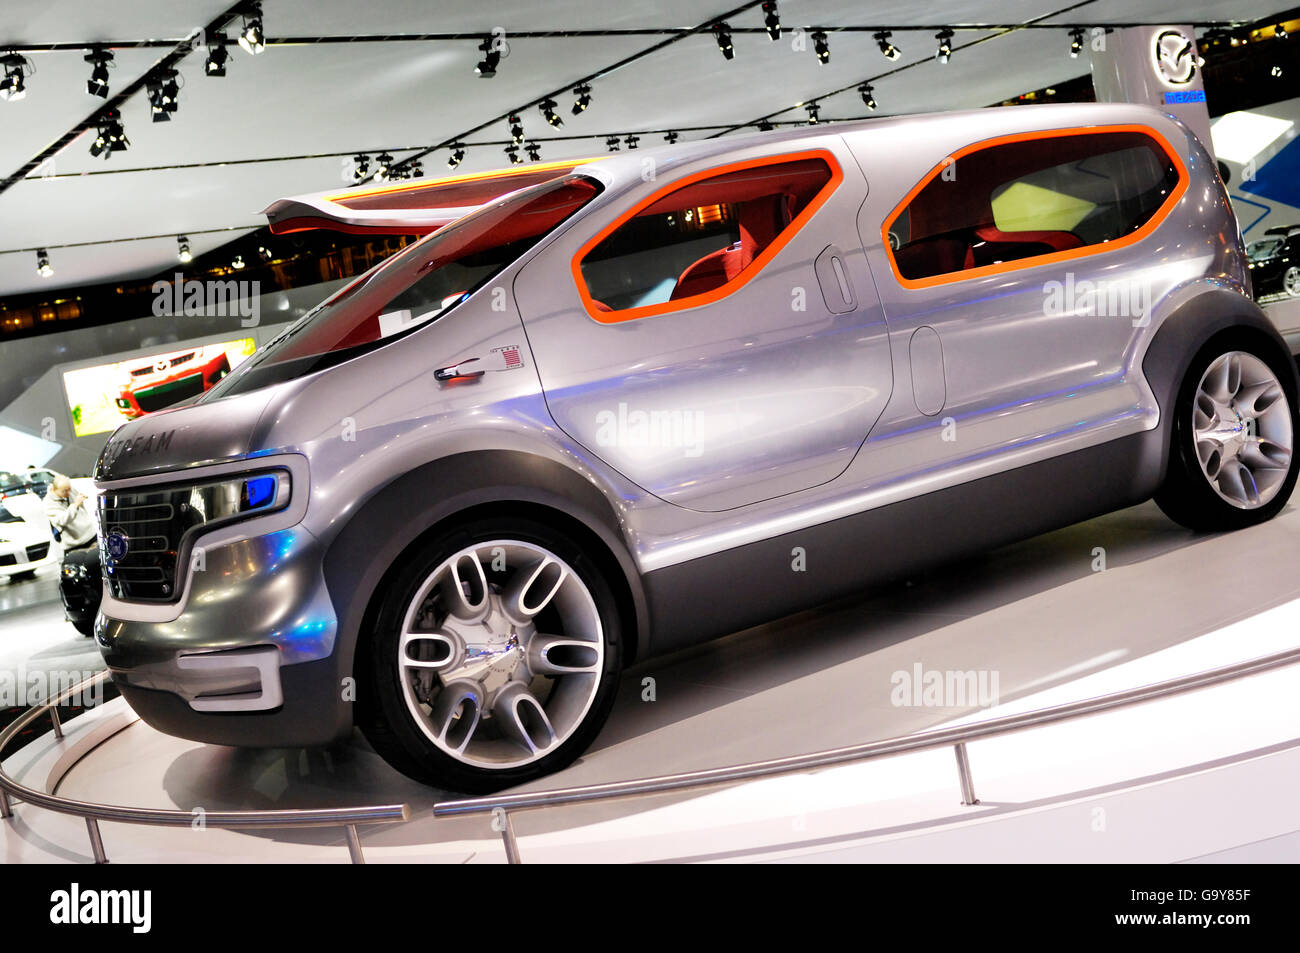 Ford Airstream concept car crossover futuriste, powered by HySeries Drive plug-in hybride hydrogène les piles Photo Stock